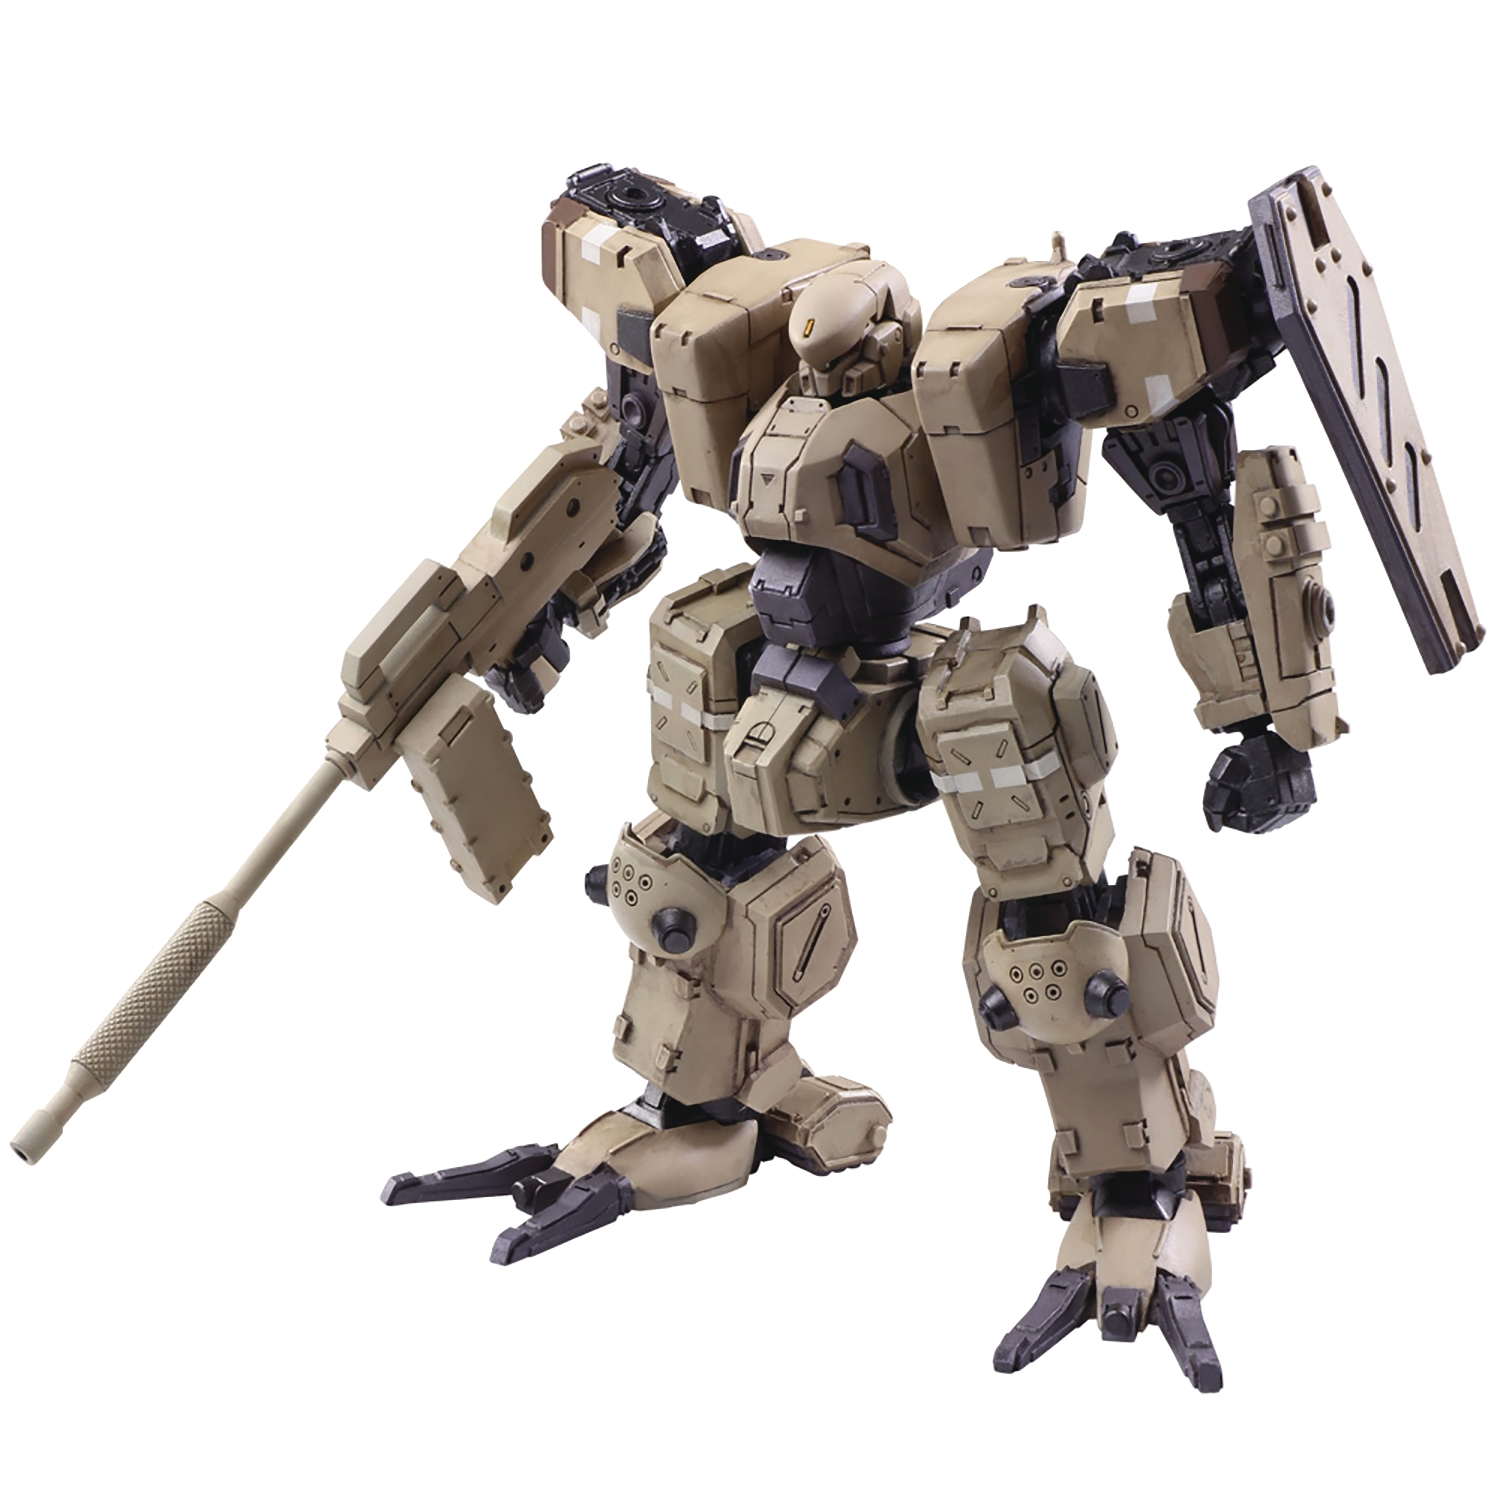 FRONT MISSION: 1ST WANDER ARTS ZENITH ARID CAMO VARIANT (Action Figure)